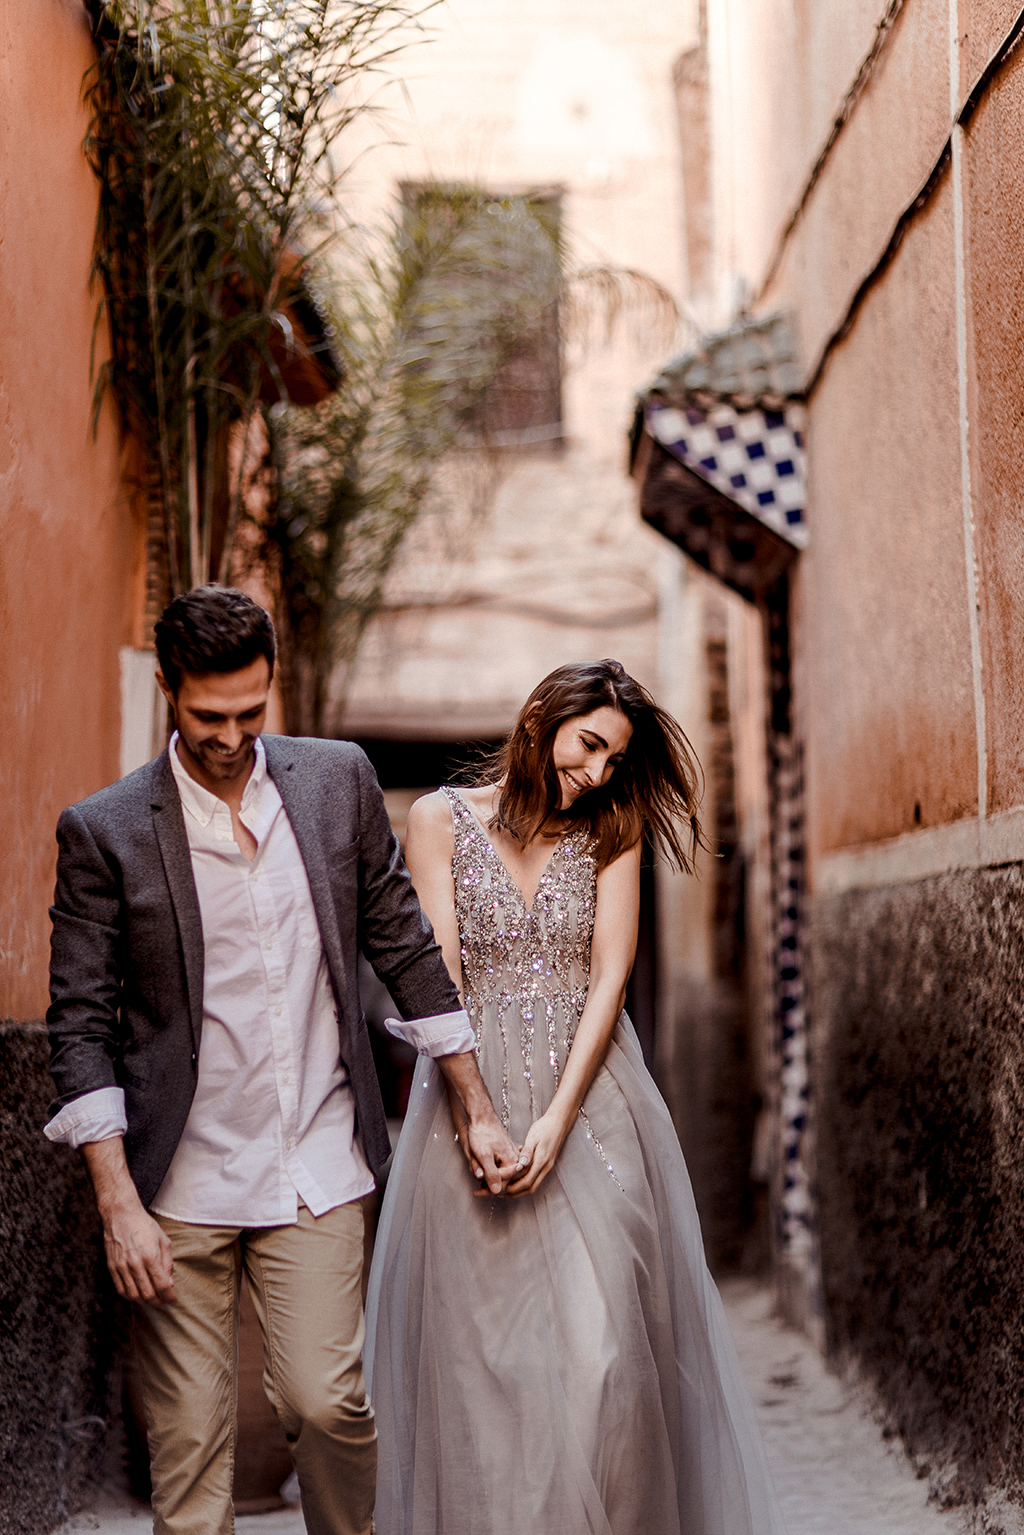 elena-engels-fotografie-marrakech-travel-shooting-reise-bemarrakech_riad_wedding013